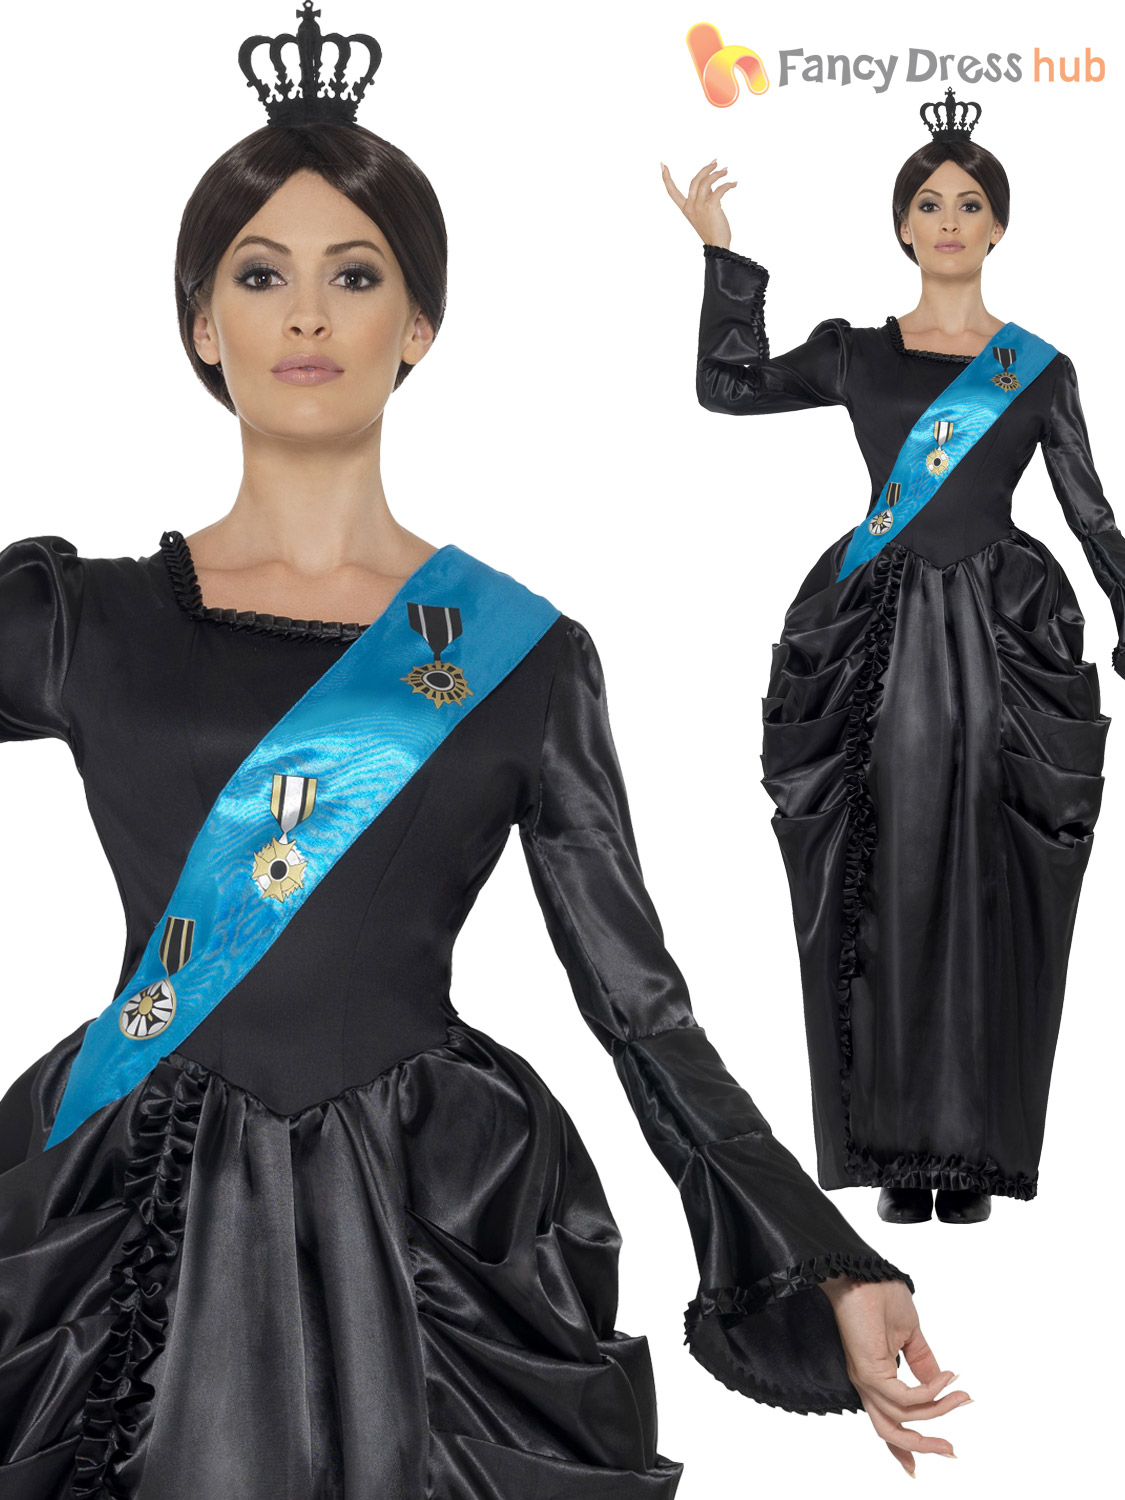 Queen Victoria Womens Fancy Dress British Royal Monarch Adult Ladies Costume New